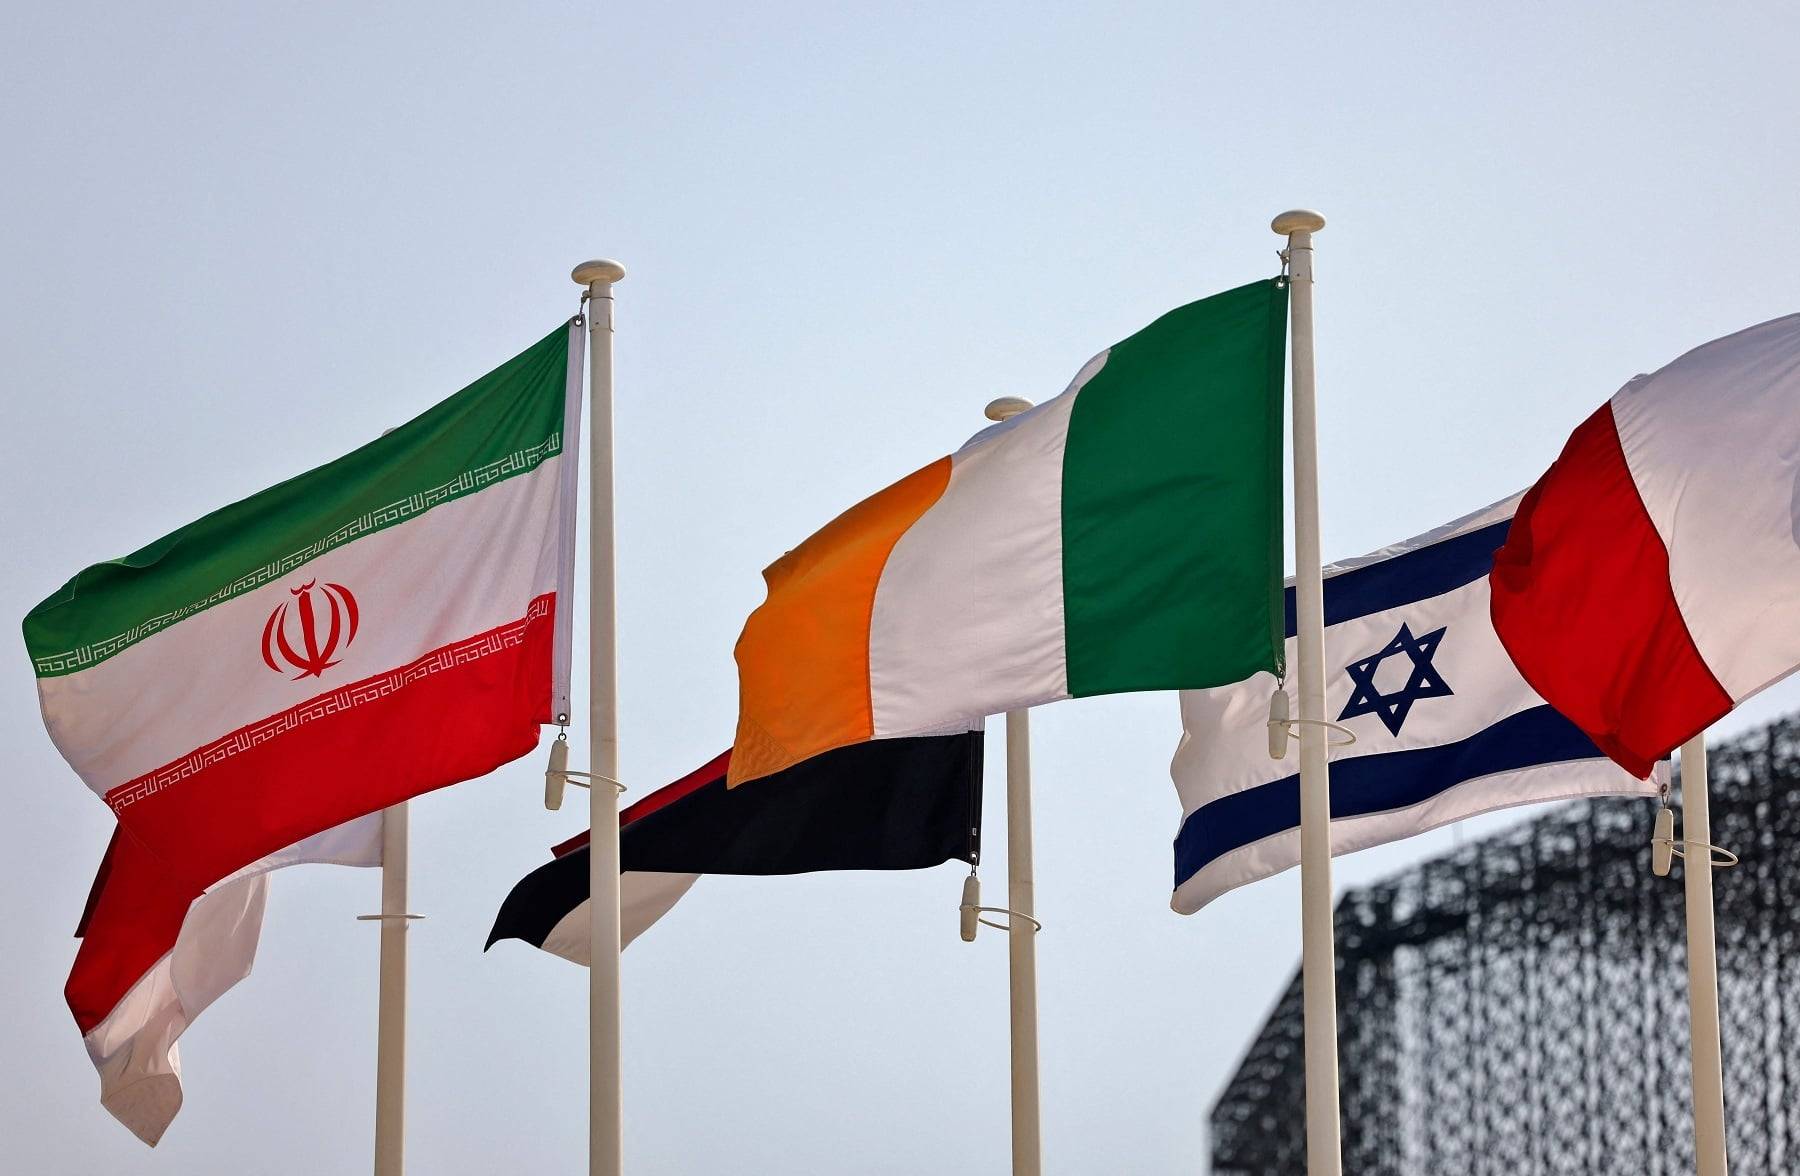 Iranian and Israeli flags are pictured near each other at the Dubai Expo 2020. — AFP